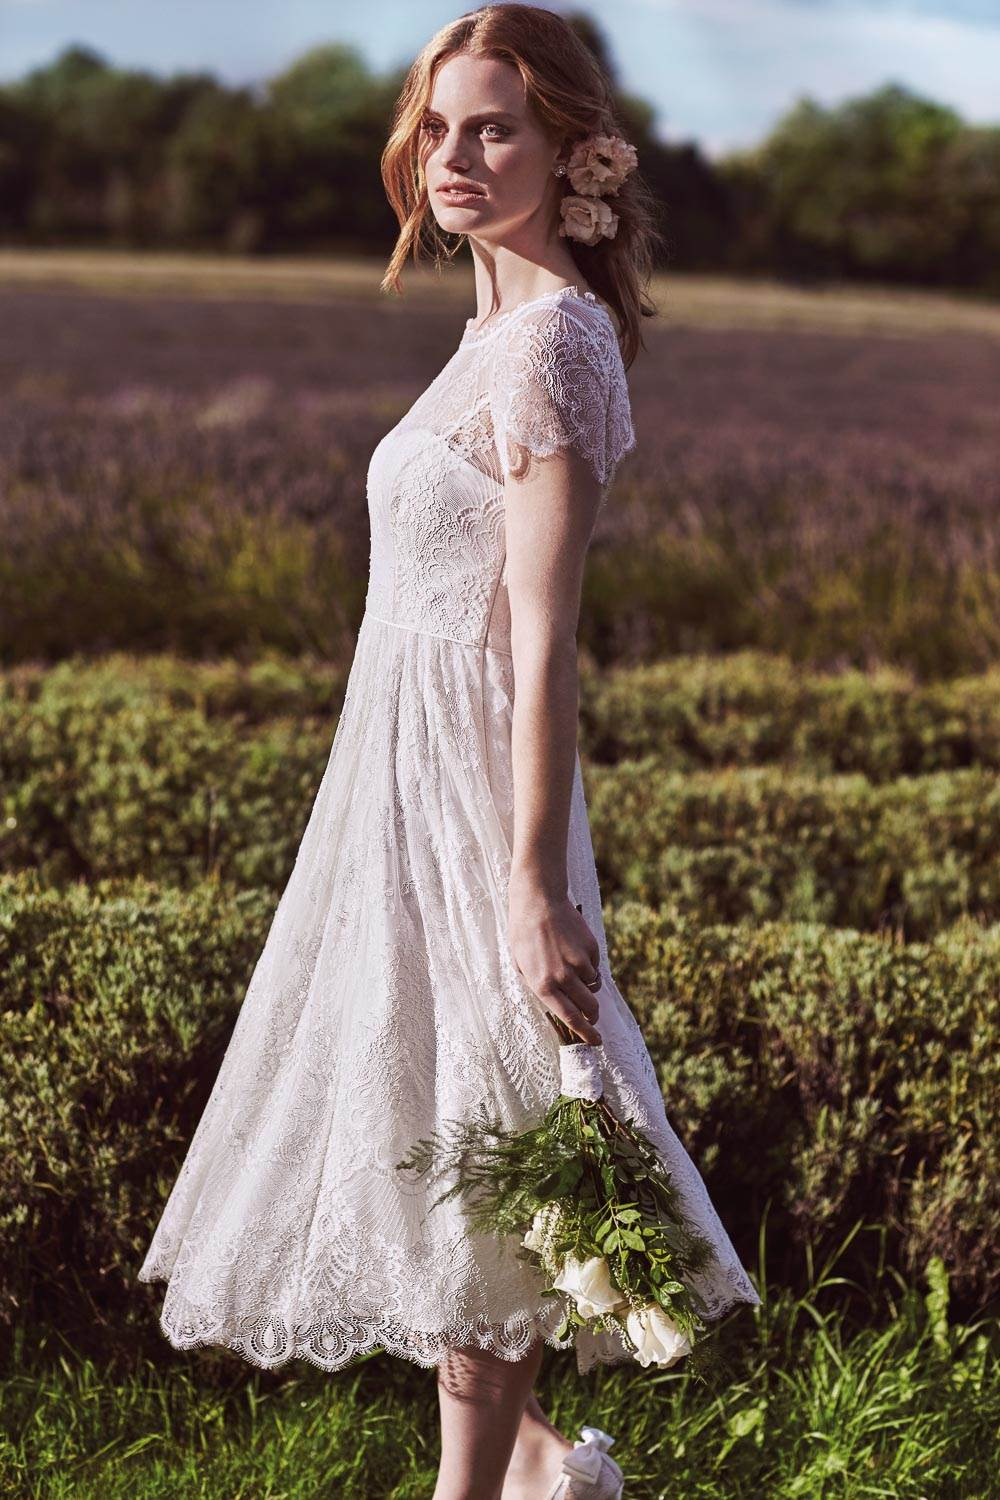 Monsoon Bridal Wedding collection as featured on The National Vintage Wedding Fair blog